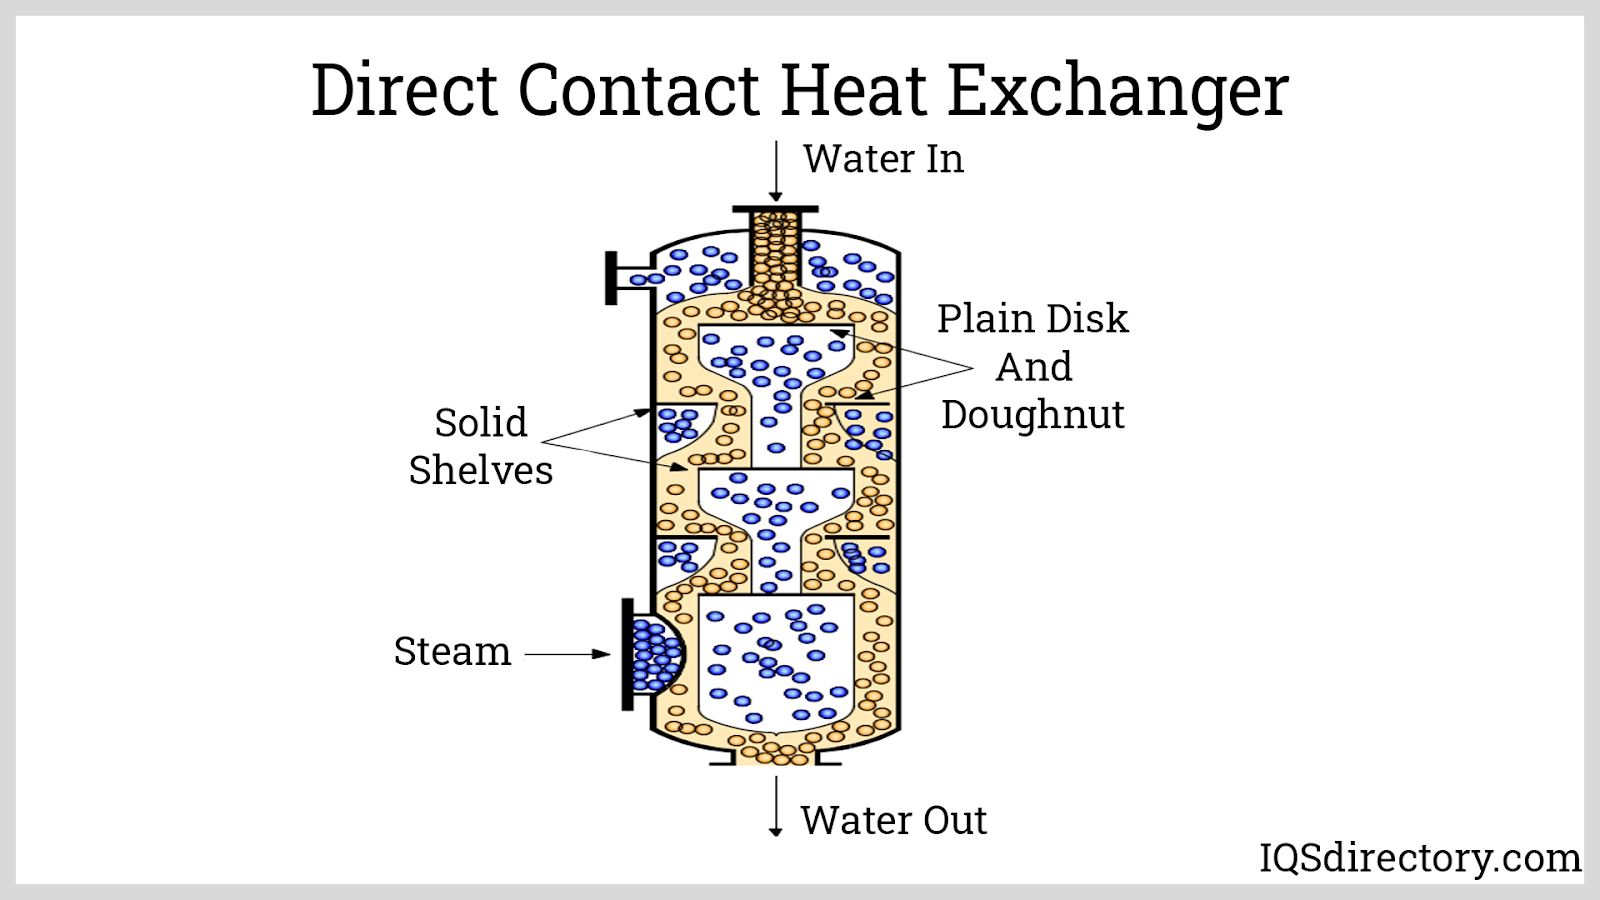 Direct Contact Heat Exchanger